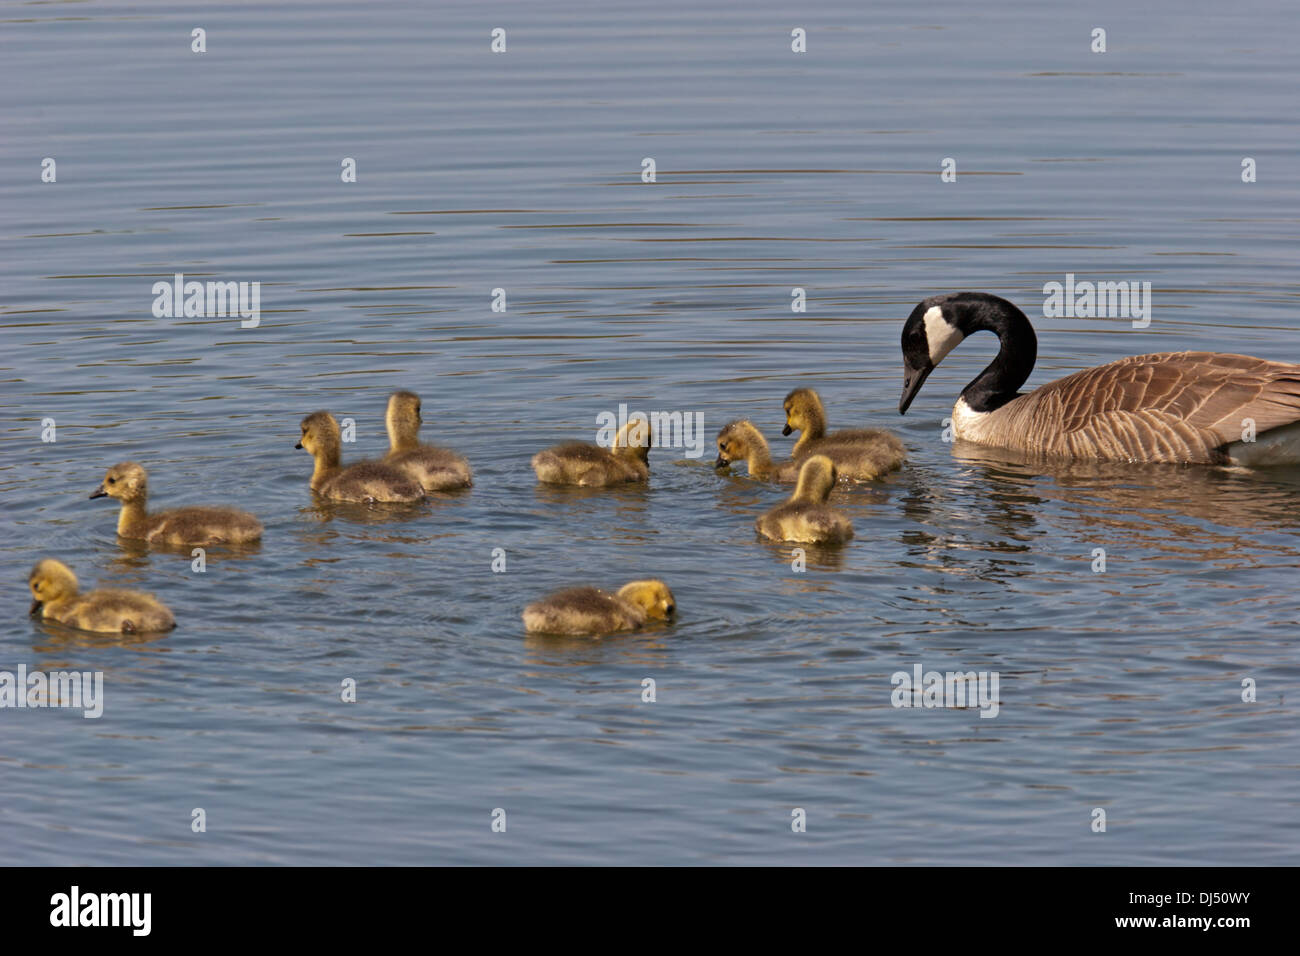 canada goose geese baby birds - Stock Image